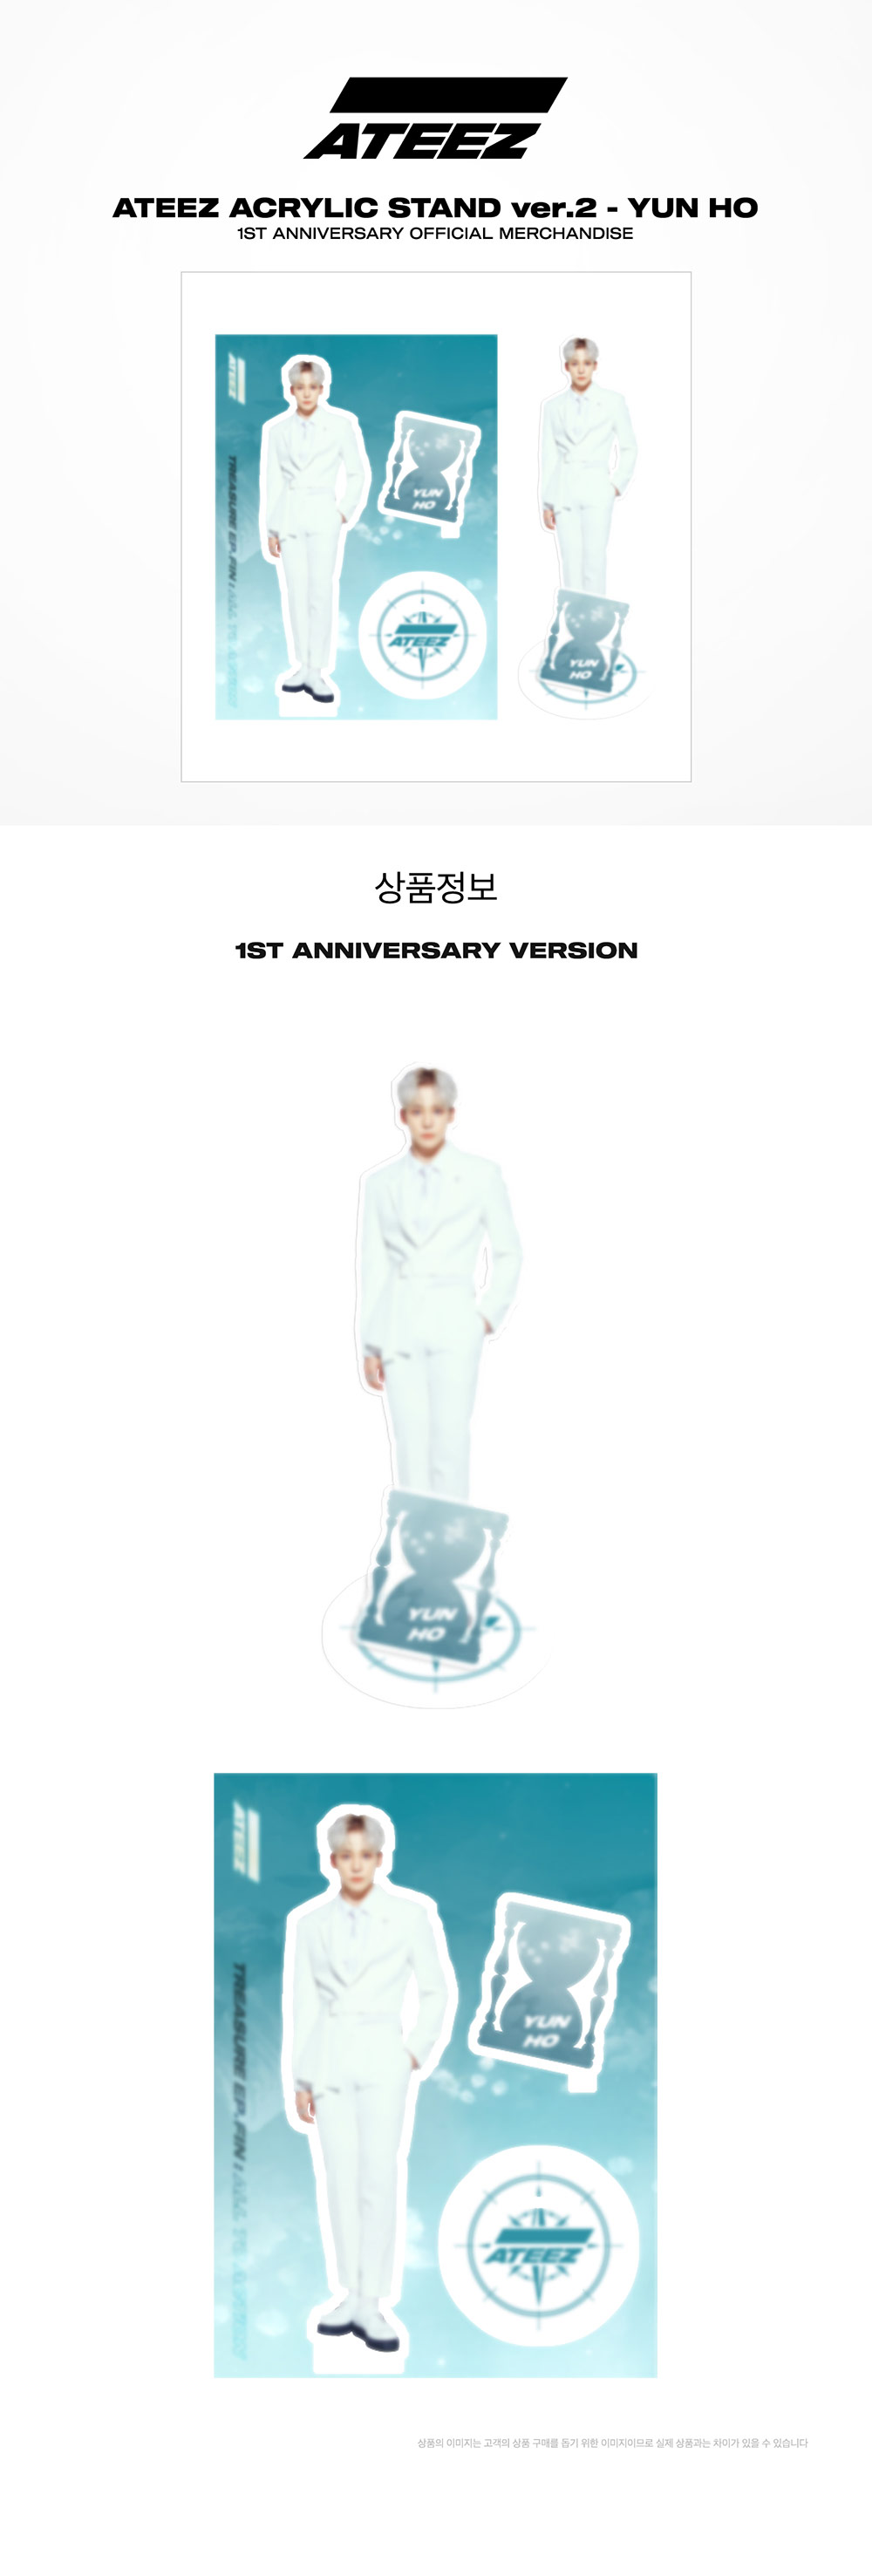 ateez_1st_anniversary_ACRYLIC_STAND2-5